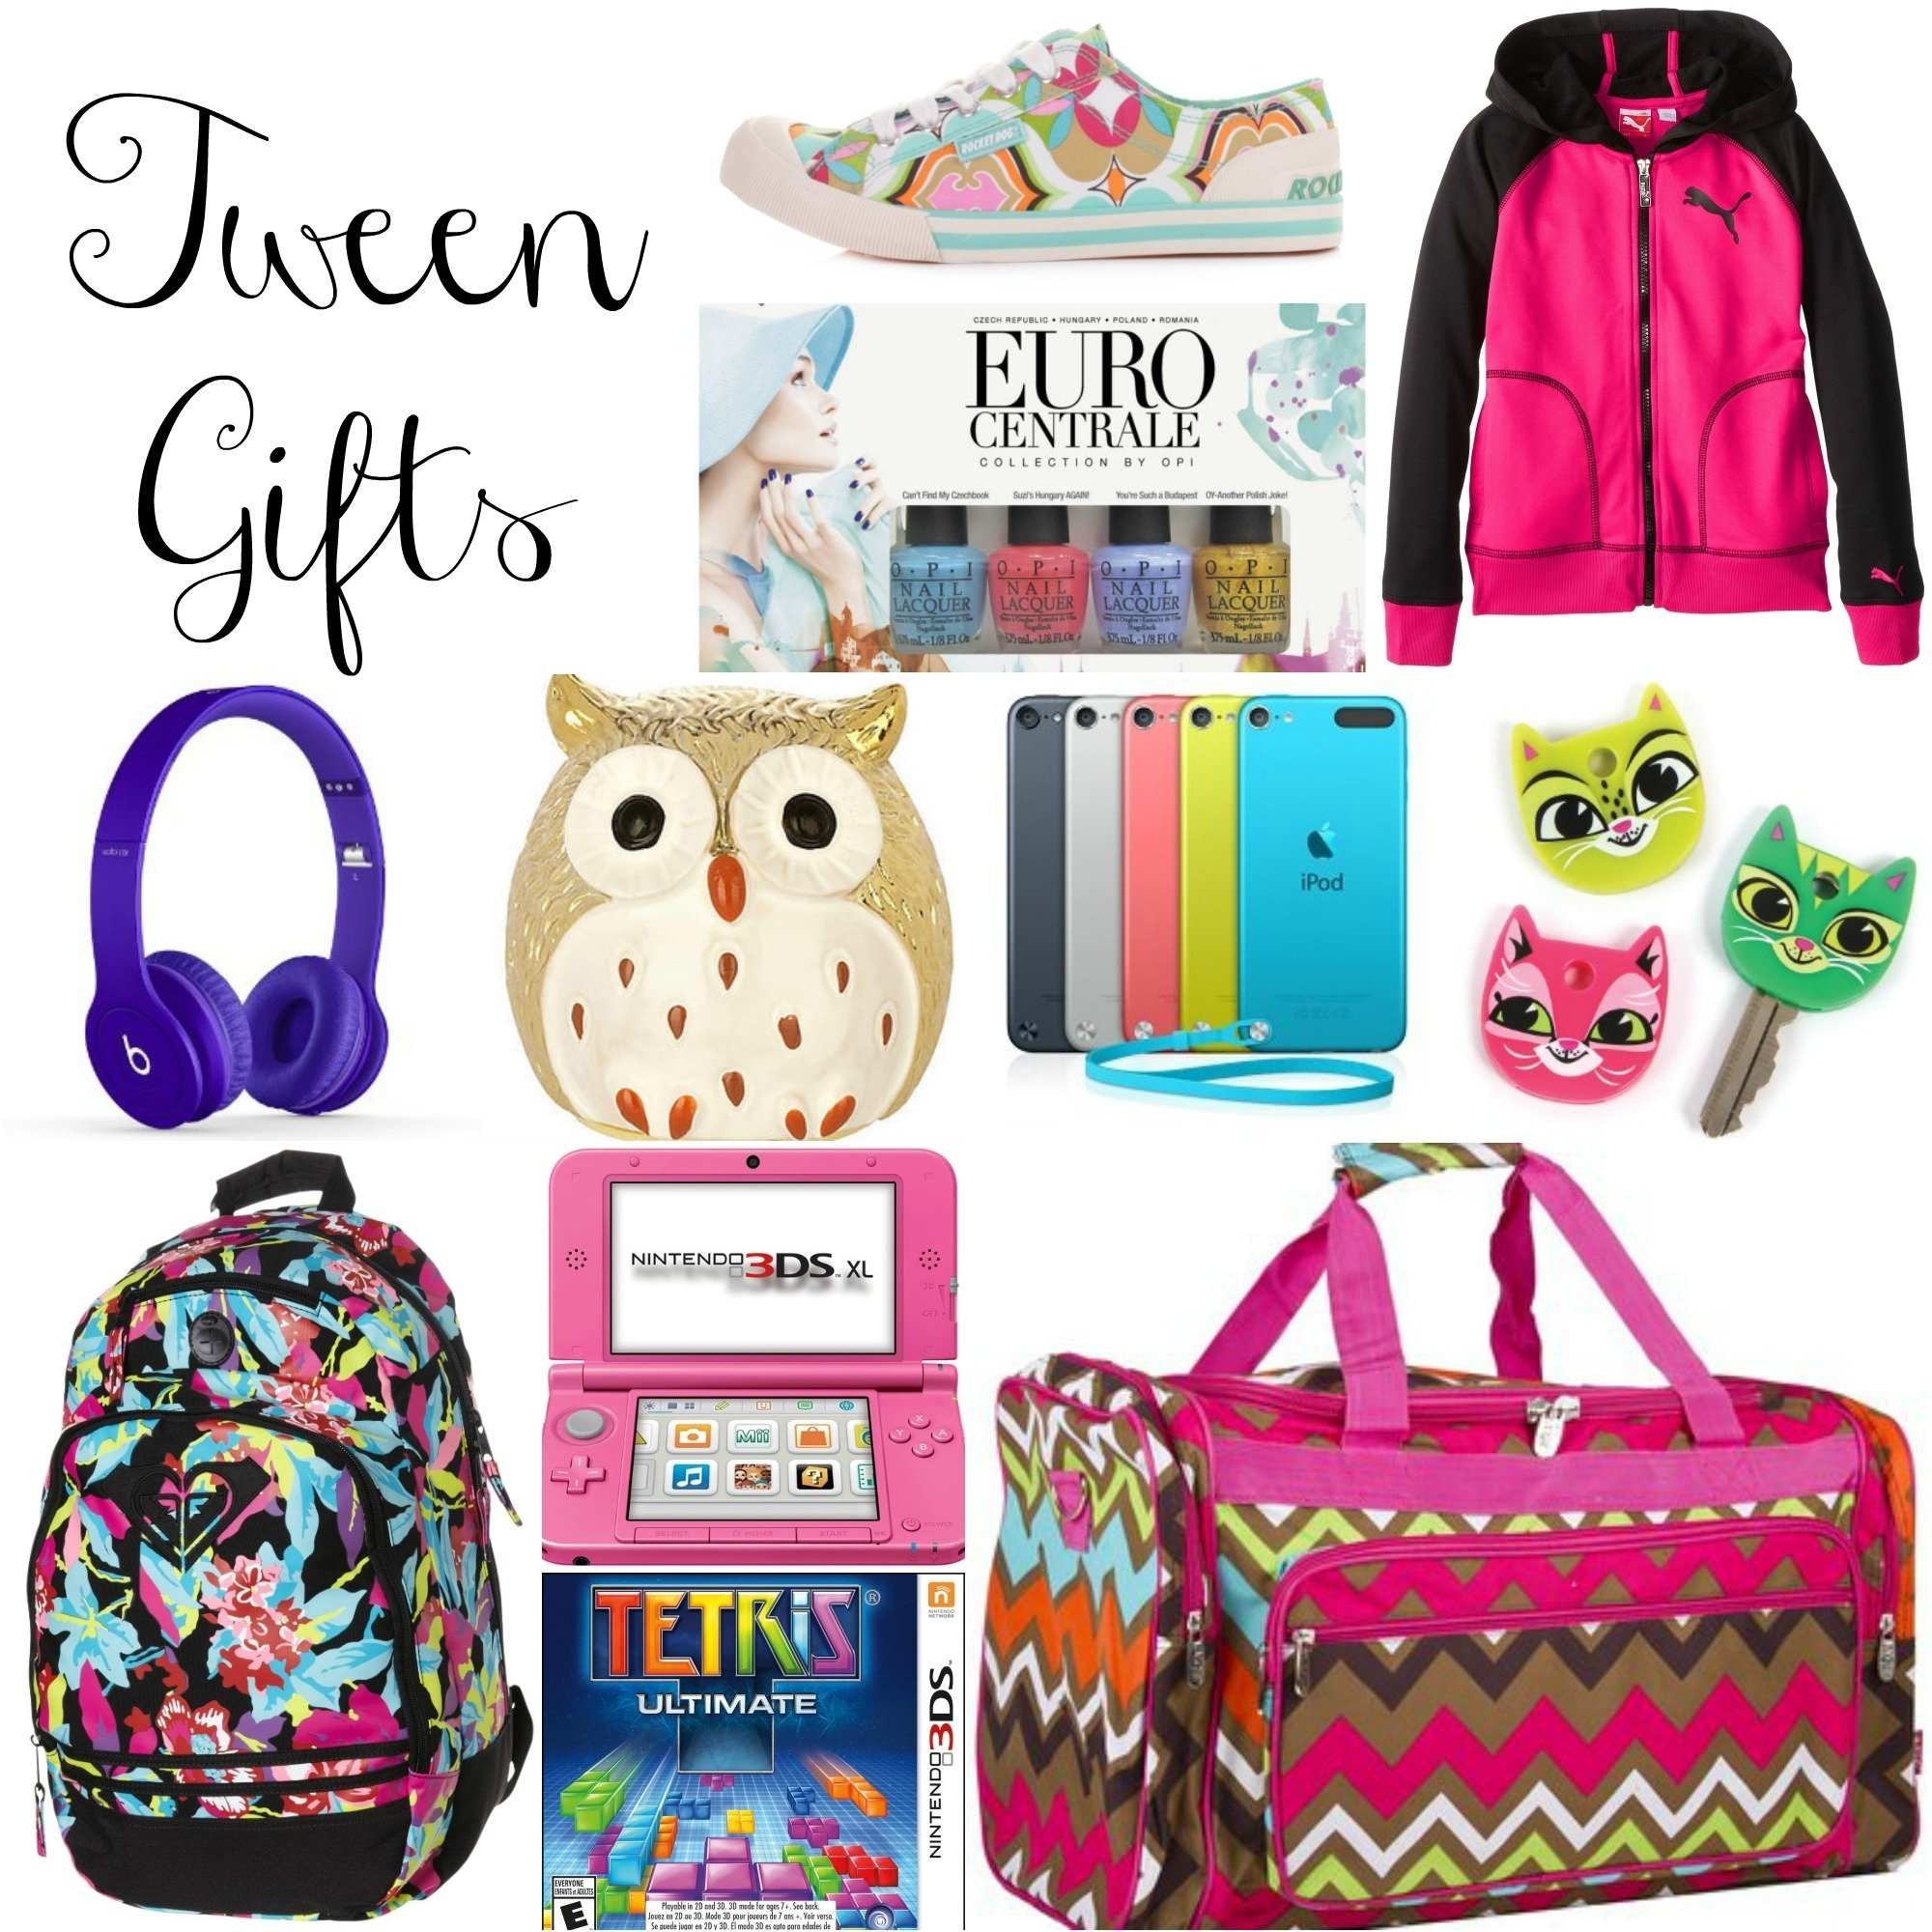 10 Wonderful Christmas Ideas For Tween Girls 21 great gifts for tweens confessions of a 1 2020